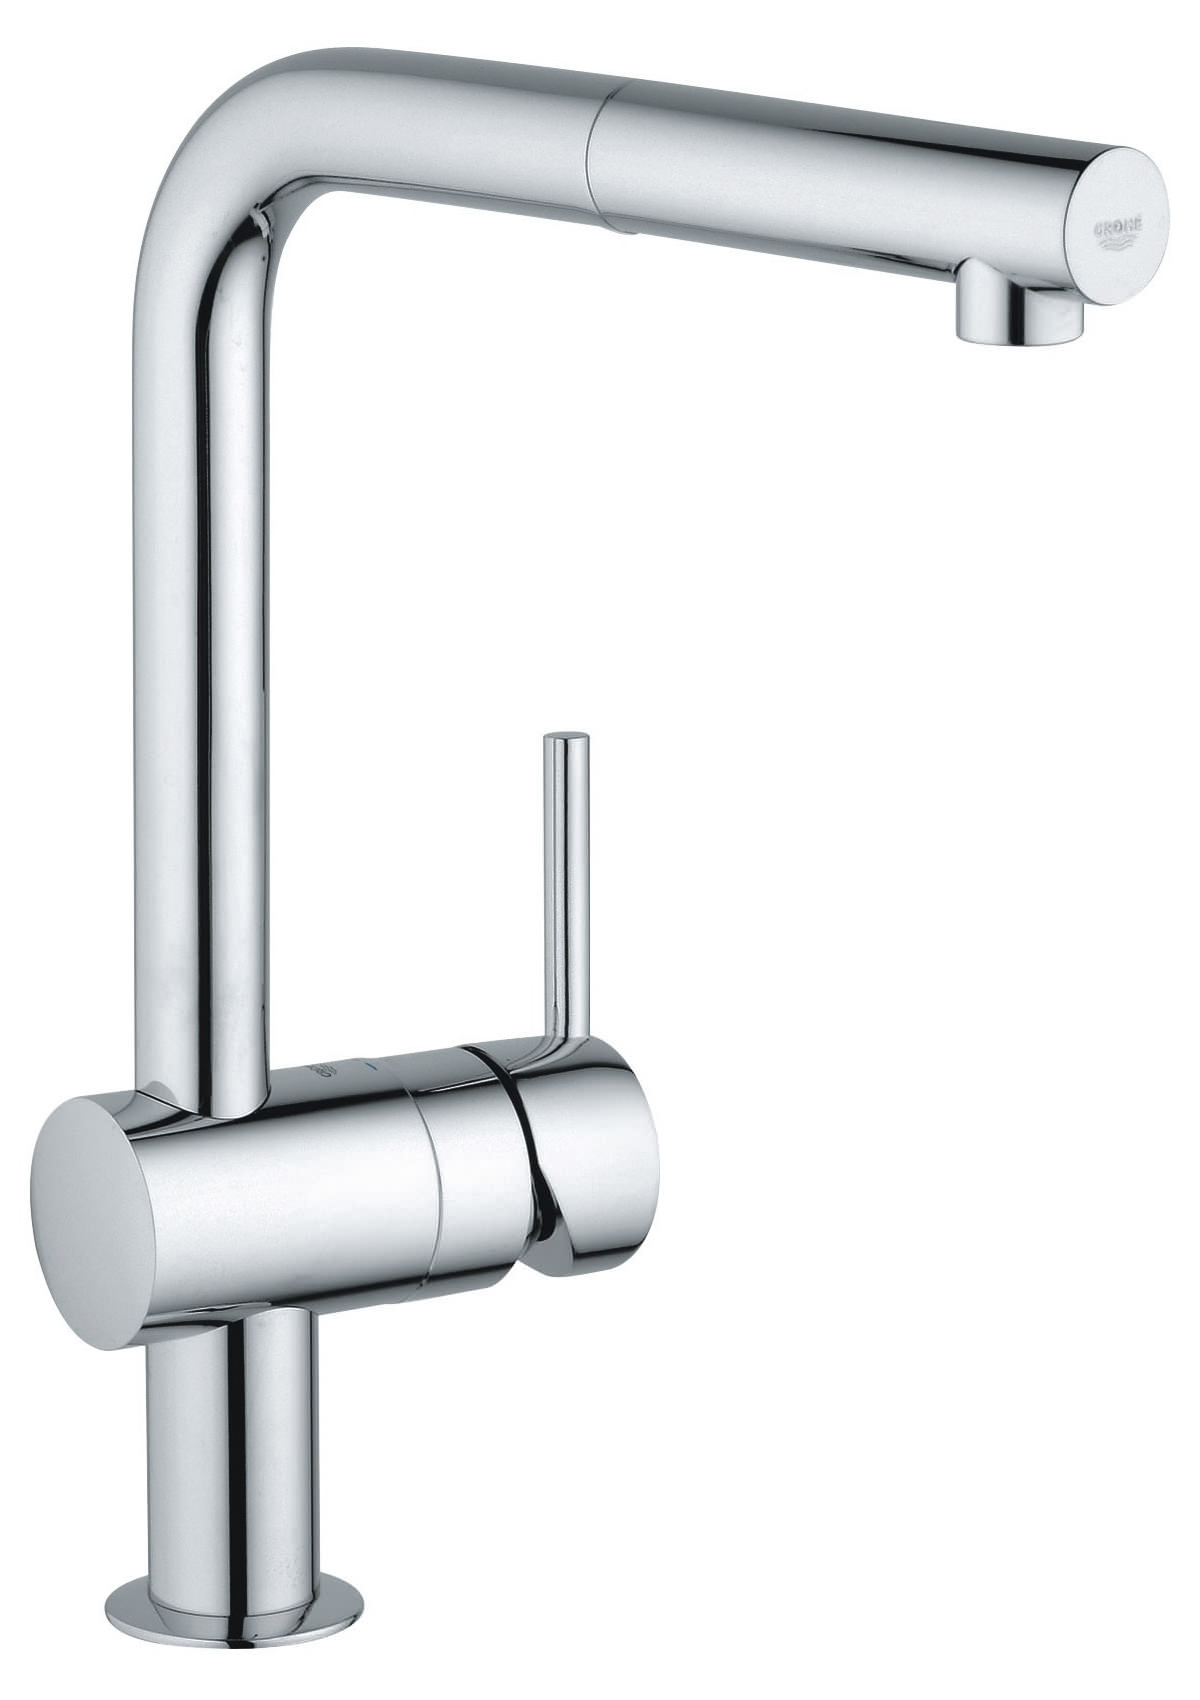 grohe minta monobloc kitchen sink mixer tap with pull out spout 32168000. Black Bedroom Furniture Sets. Home Design Ideas